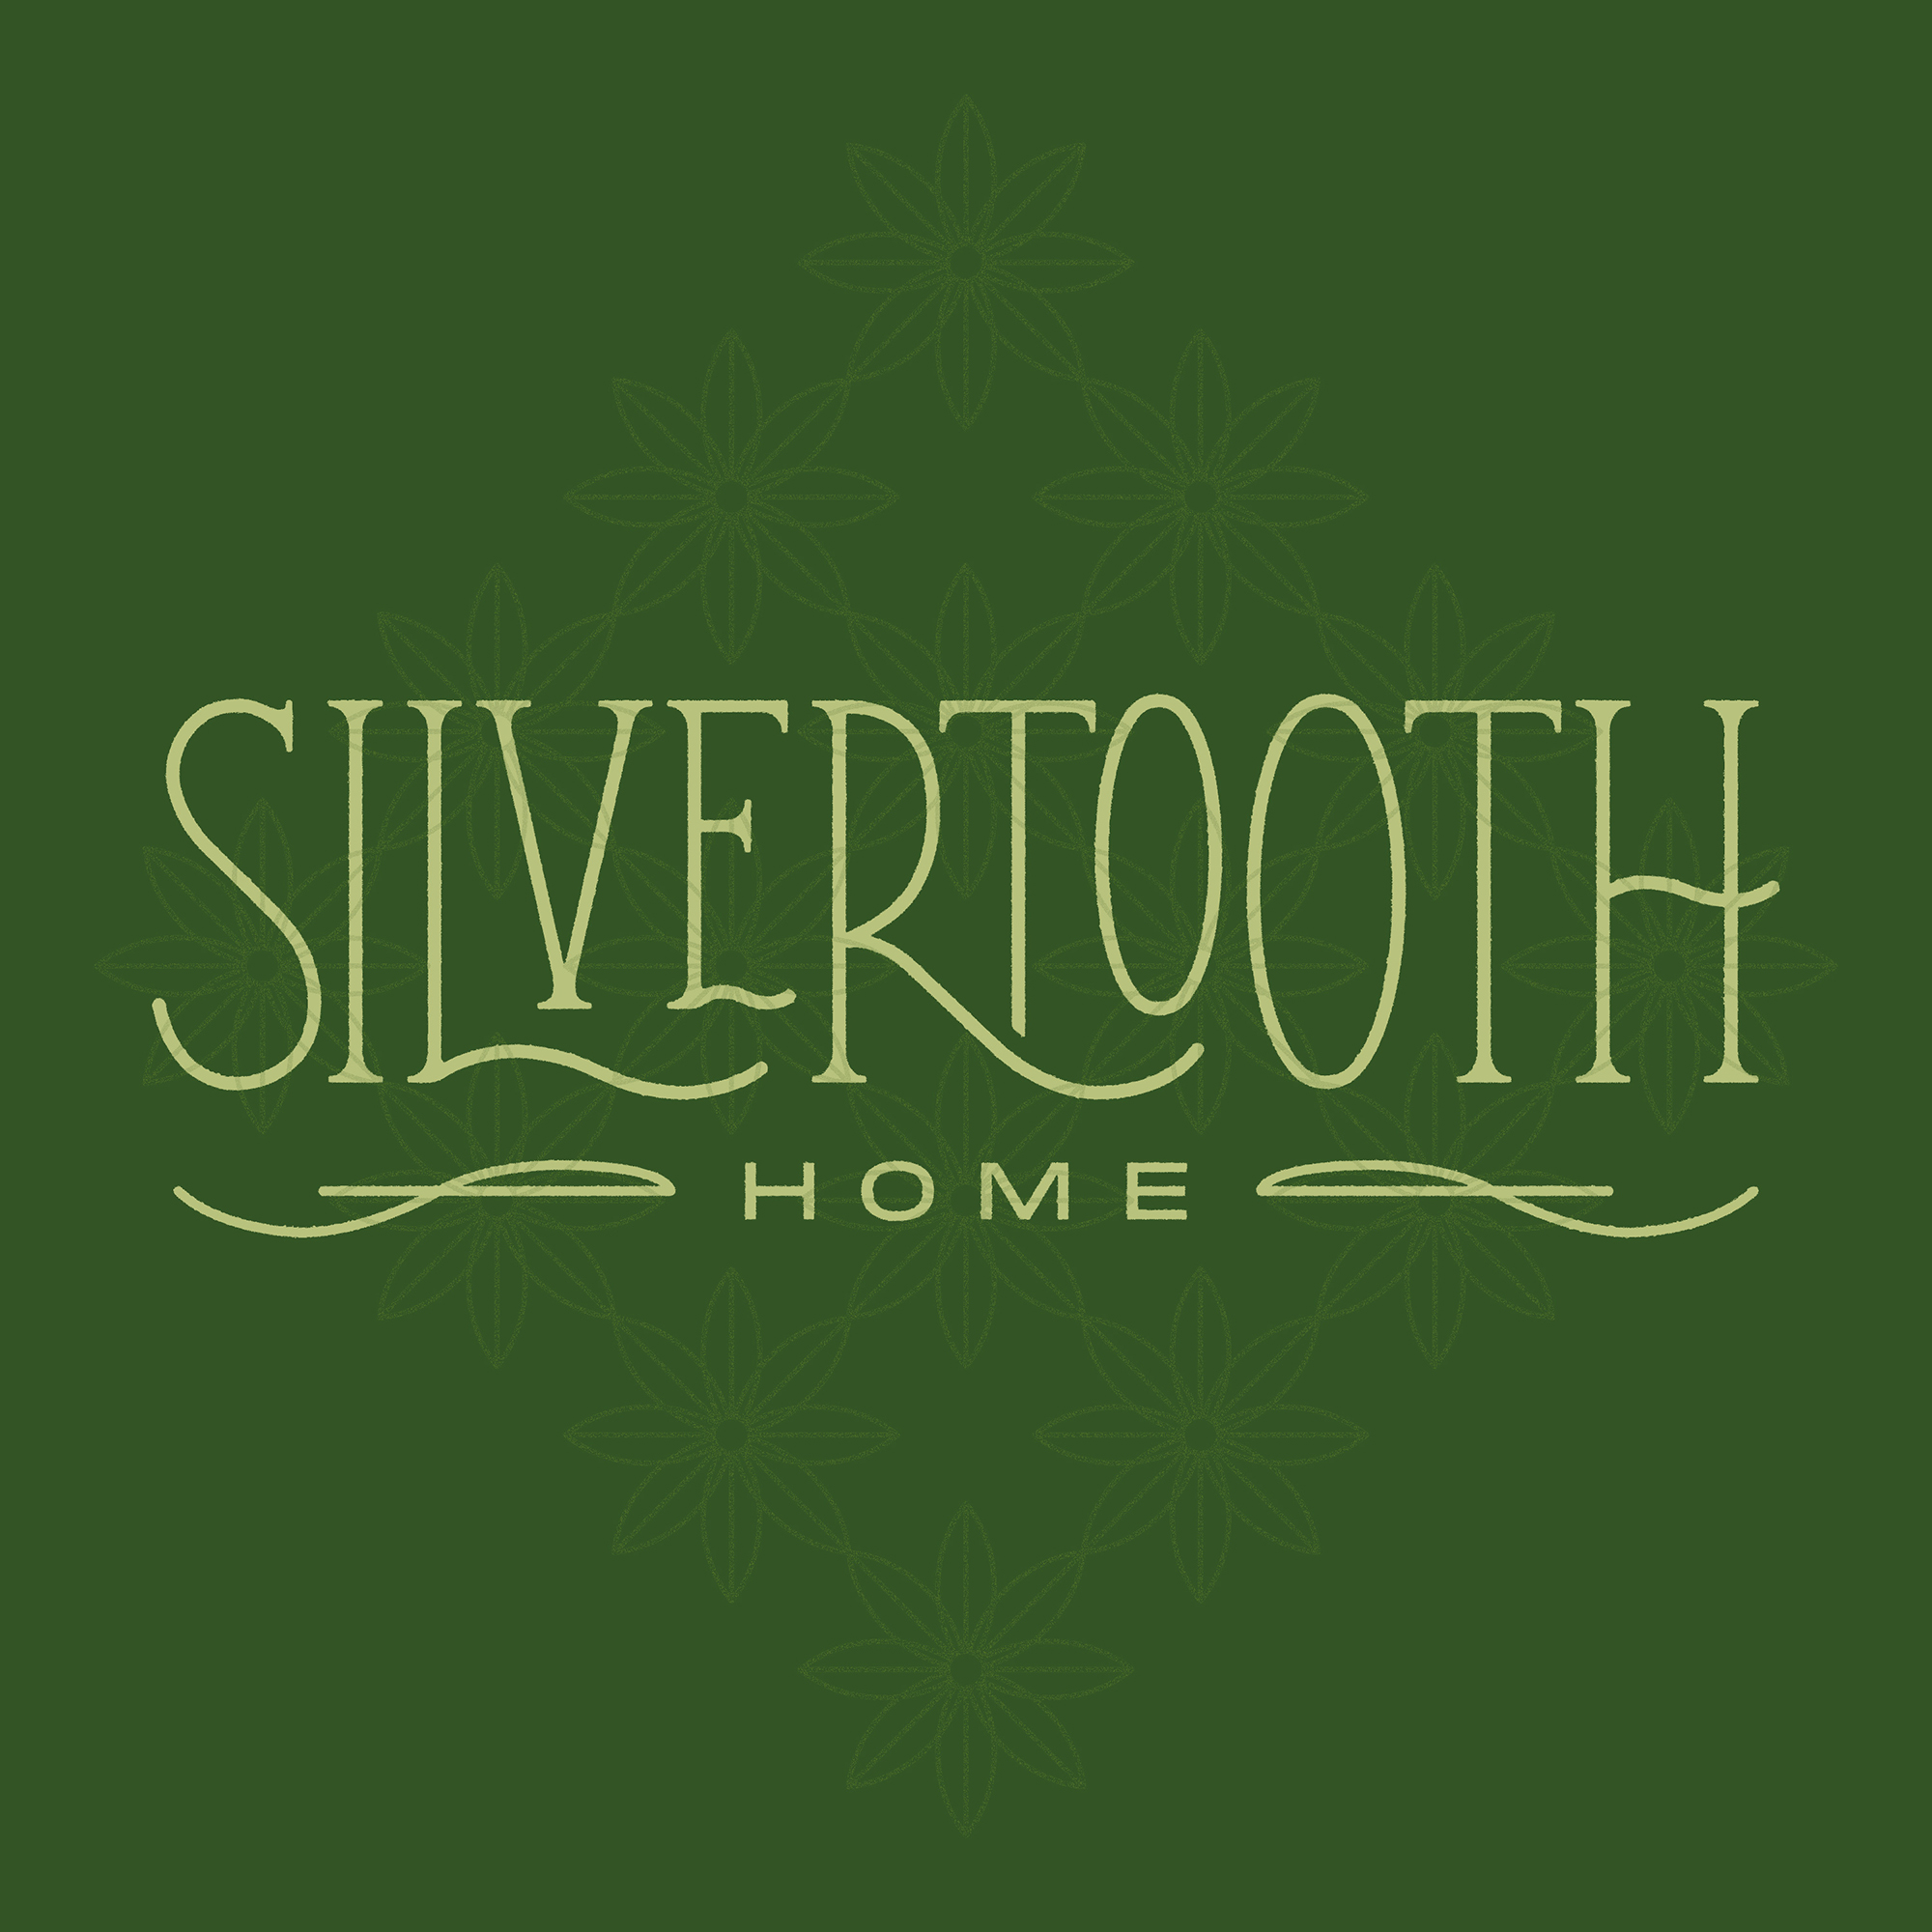 Silvertooth Home